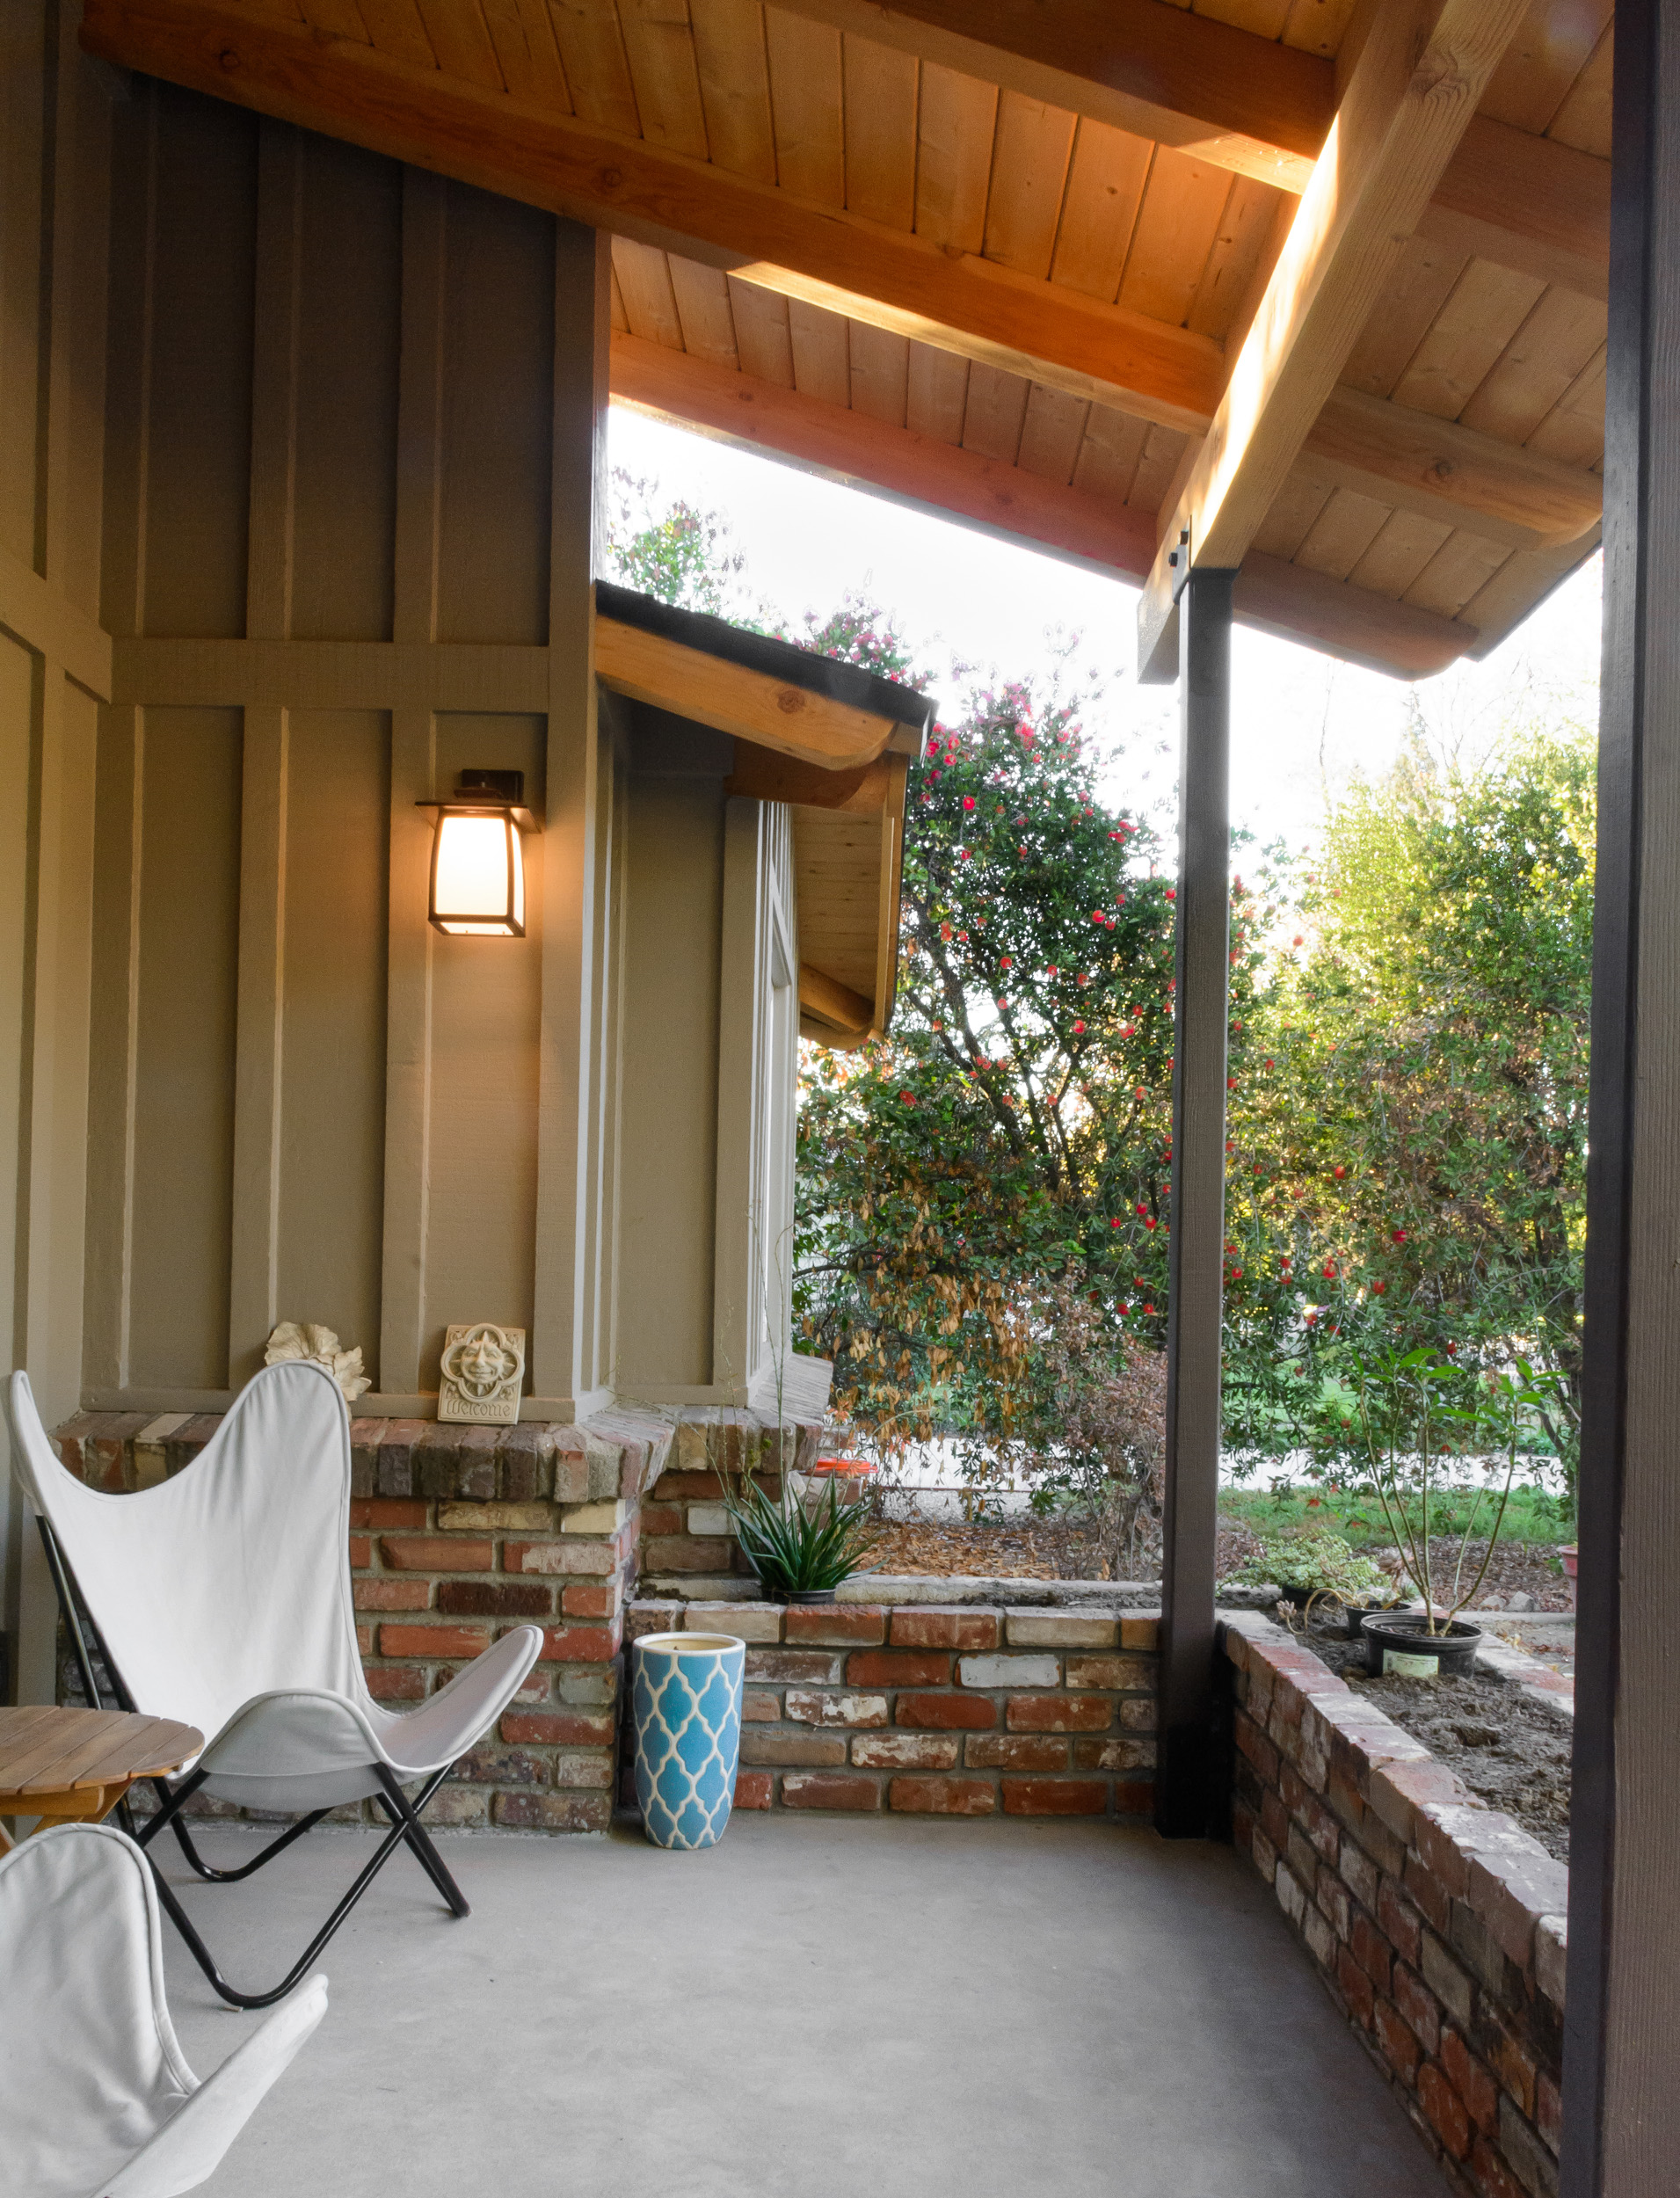 Front porch welcome and a place for respite: covered front porch with wood beams, concrete paving, a brick planter and a craftsman style wall sconce